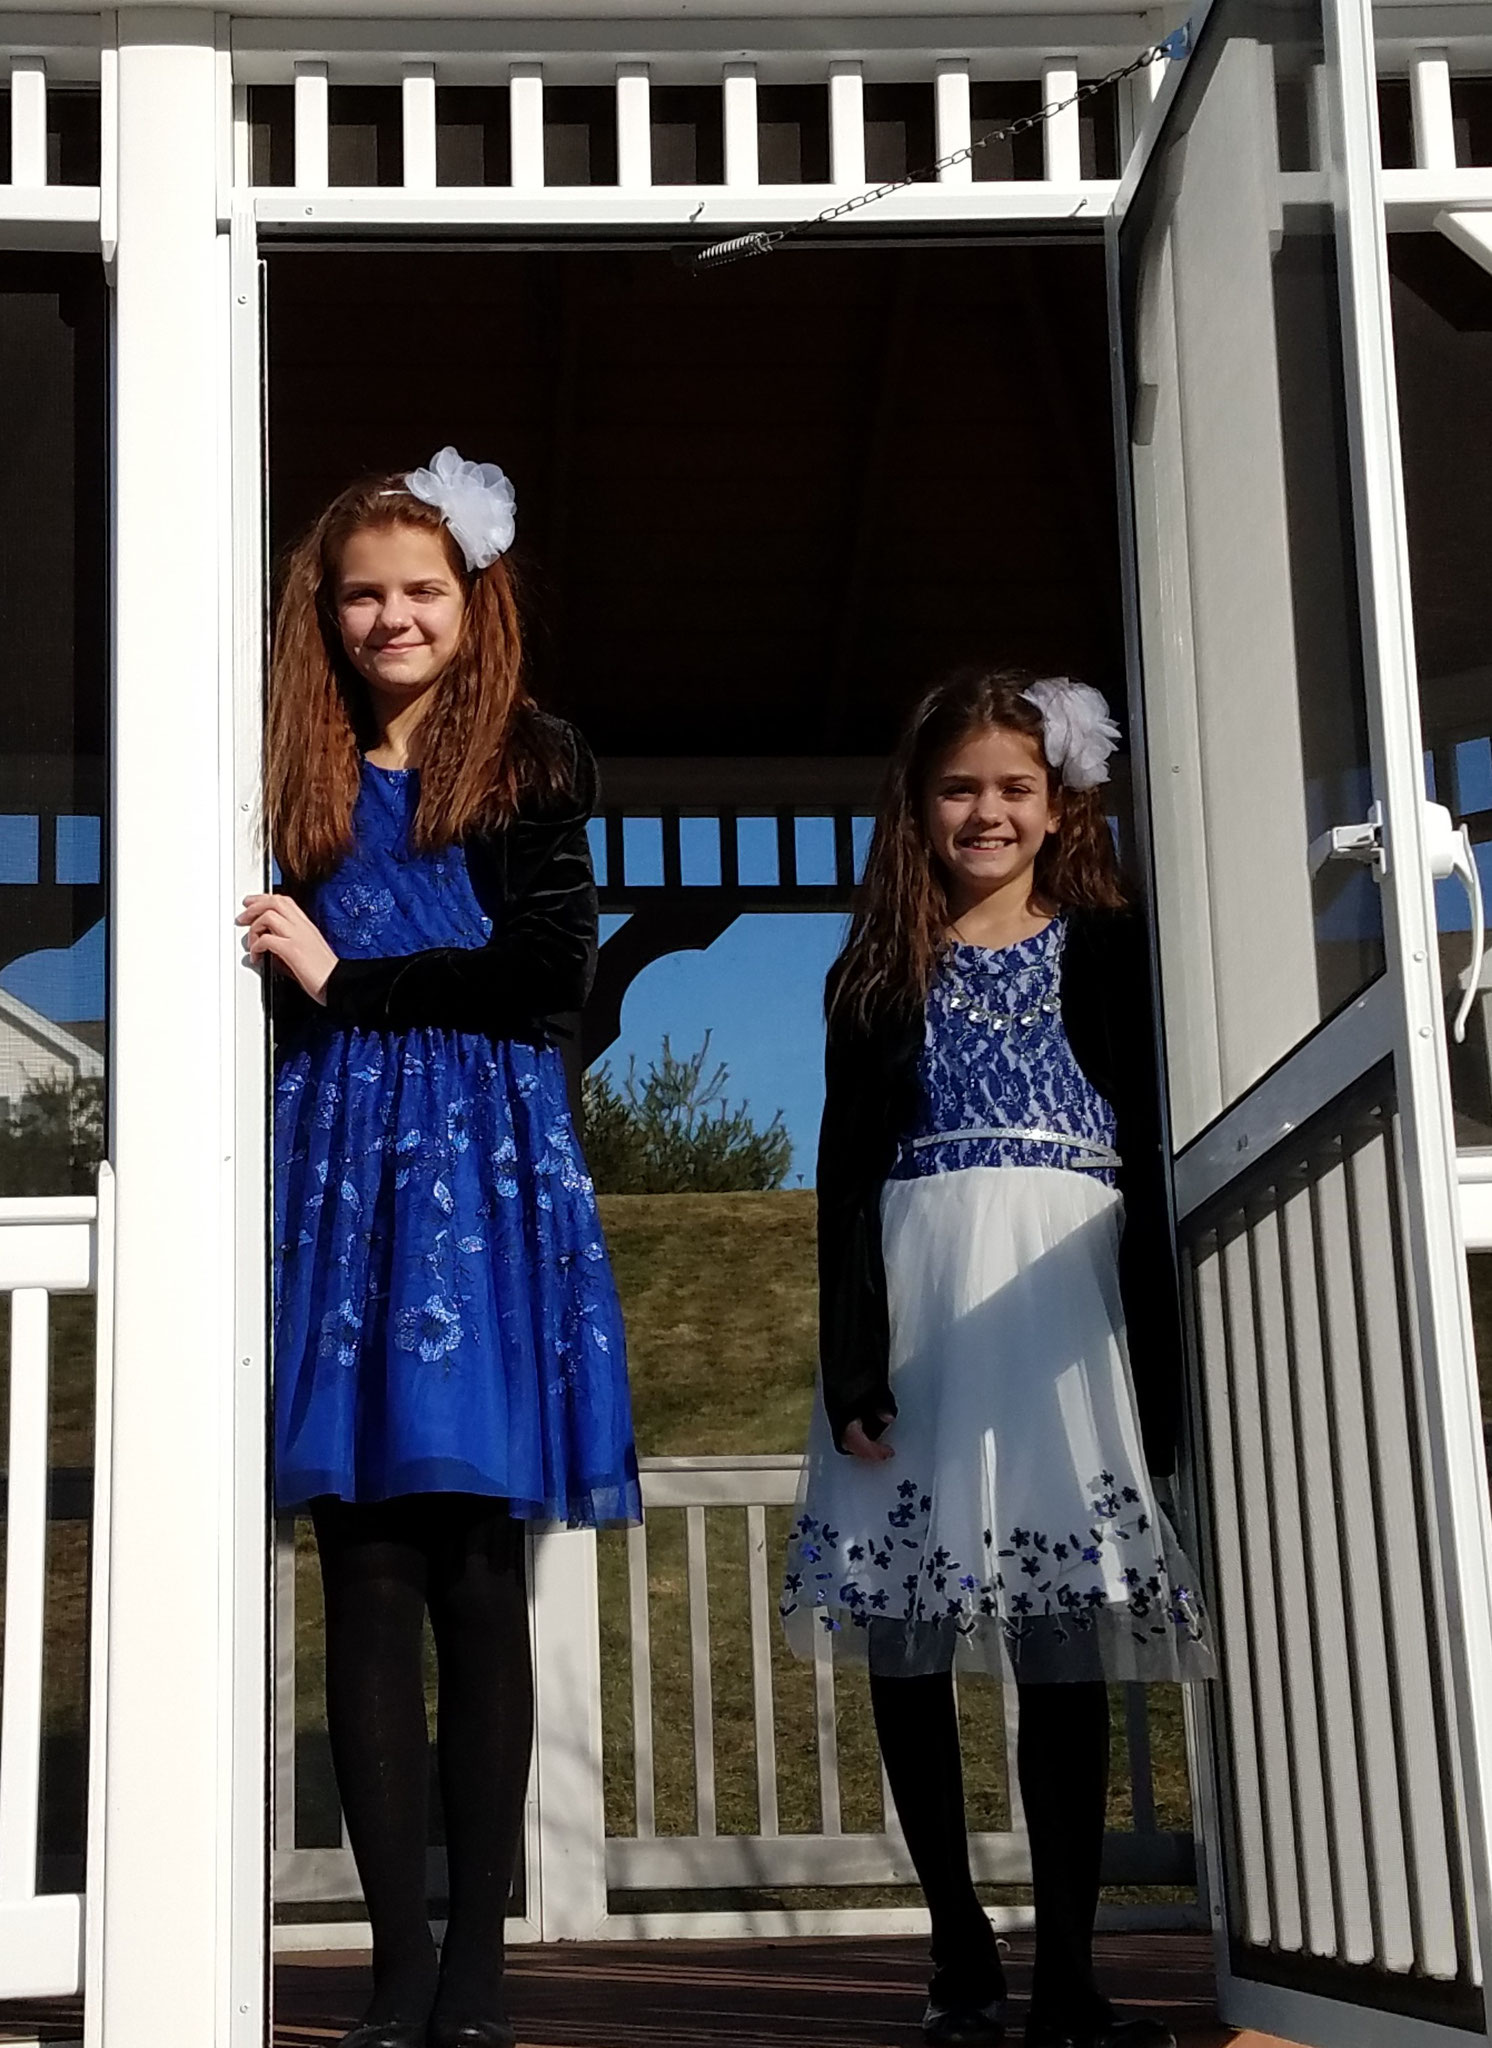 """ANNA AND ELISA PLANO WON THE THIRD PRIZE AT THE INTERNATIONAL MUSIC COMPETITION """"THE MUSIC OF MEDITERRANEAN EUROPE"""""""